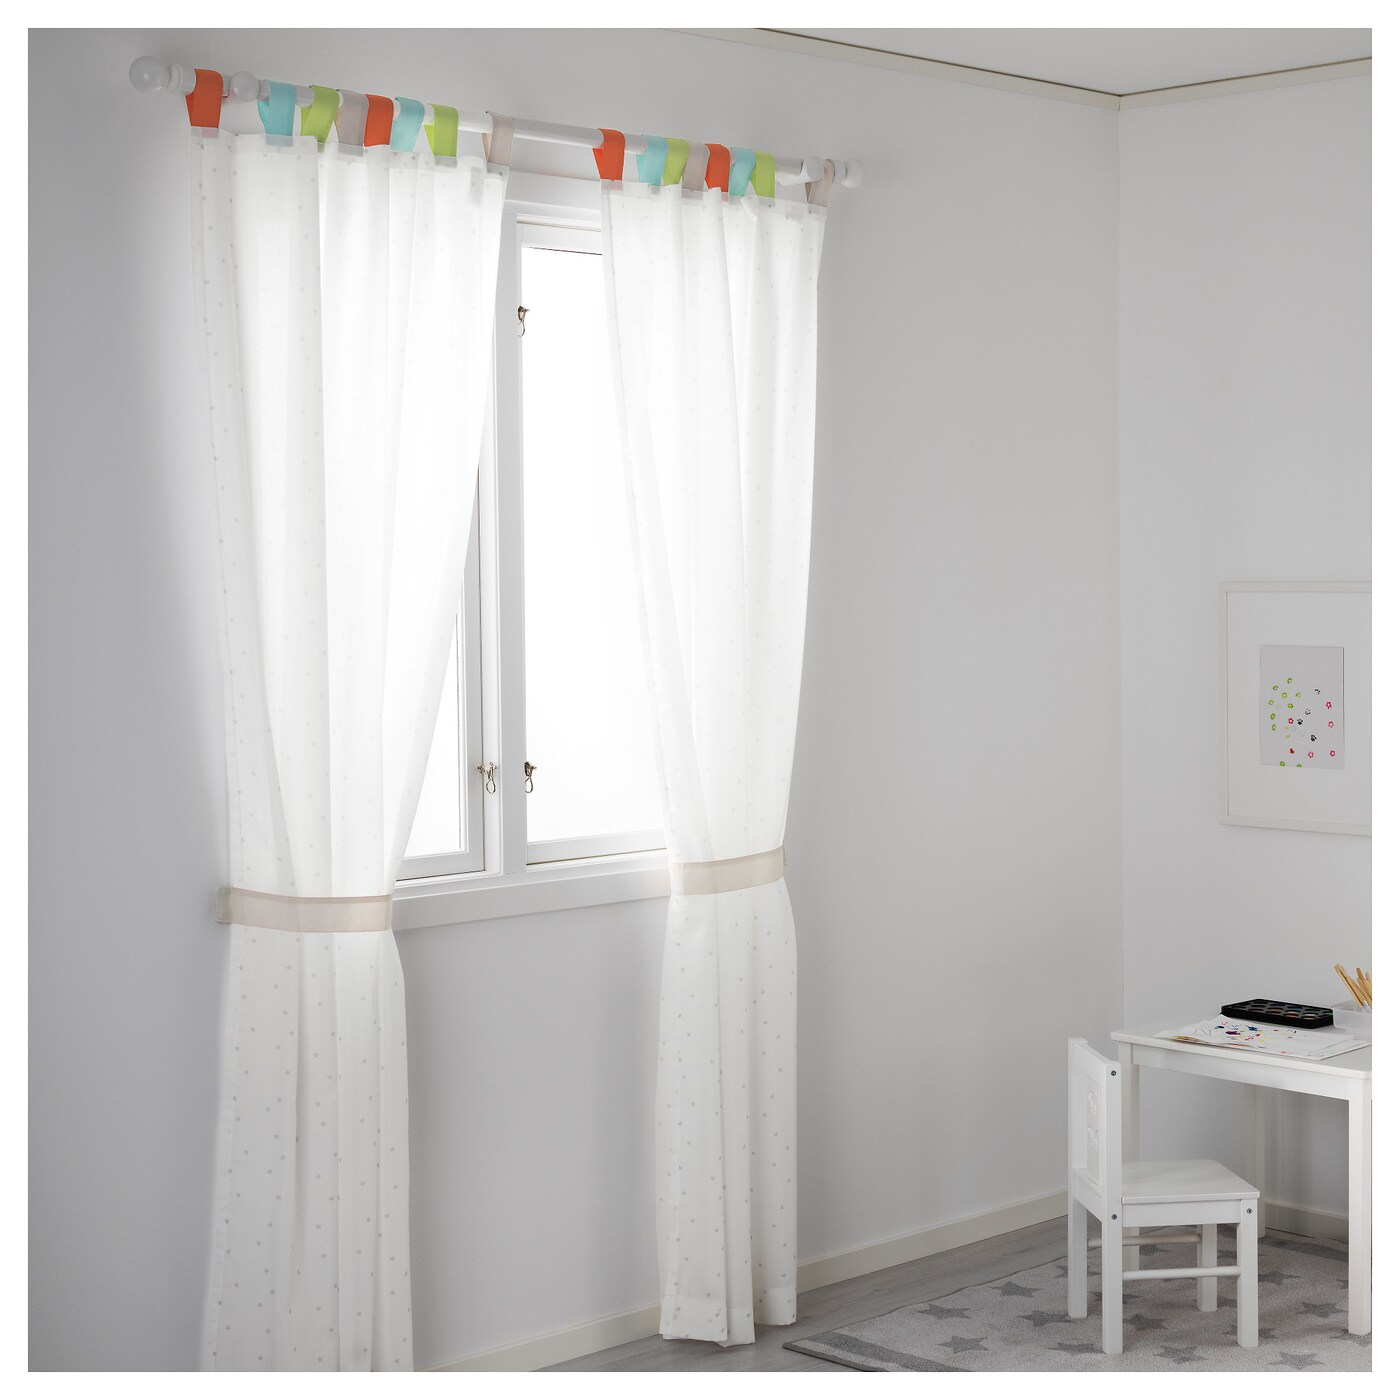 IKEA HIMMELSK curtains with tie-backs, 1 pair